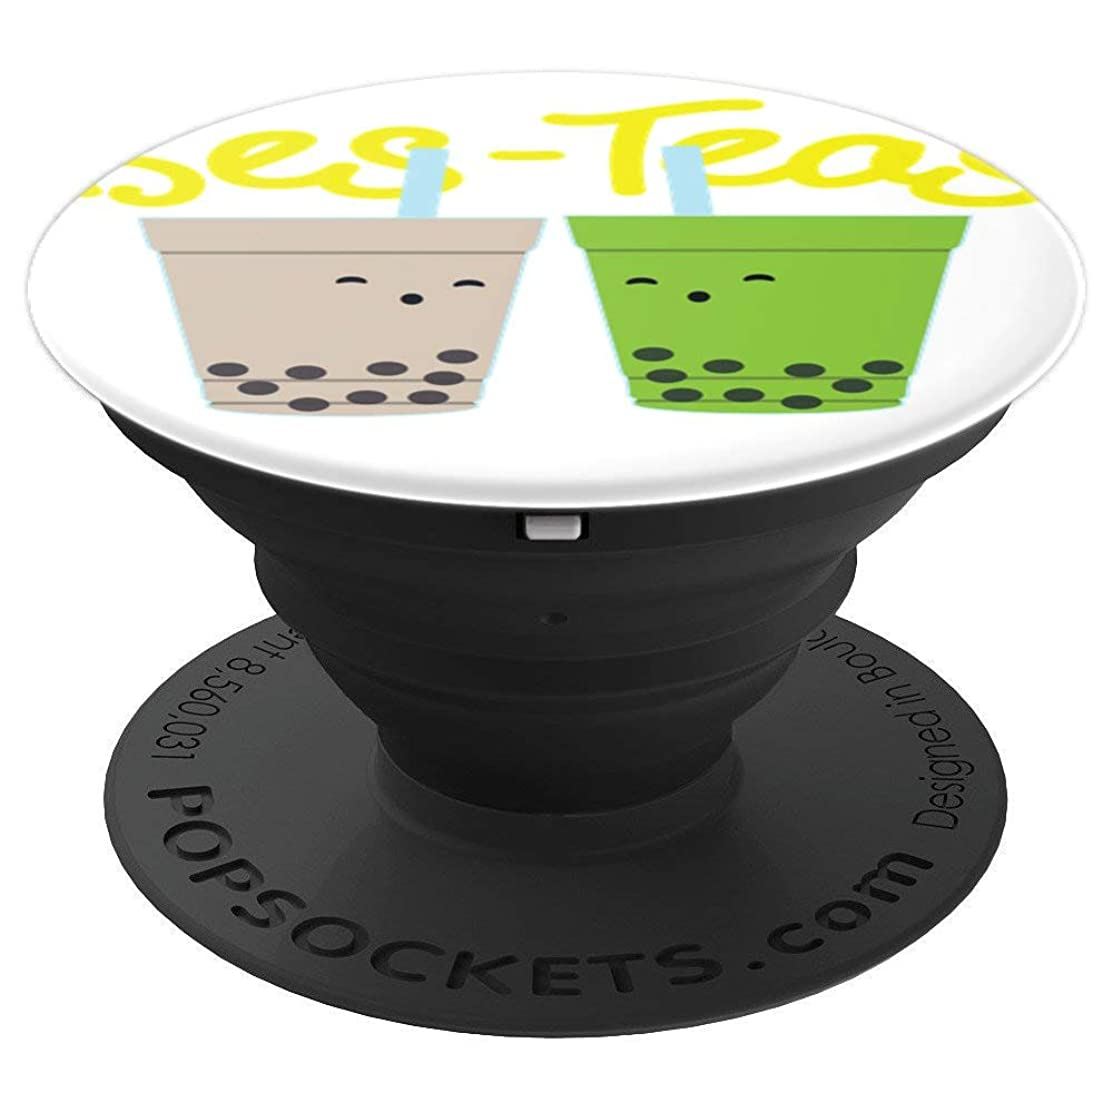 Bes-Teas - Besties Best Friends Bubble Tea Boba Cute T Shirt PopSockets Grip and Stand for Phones and Tablets